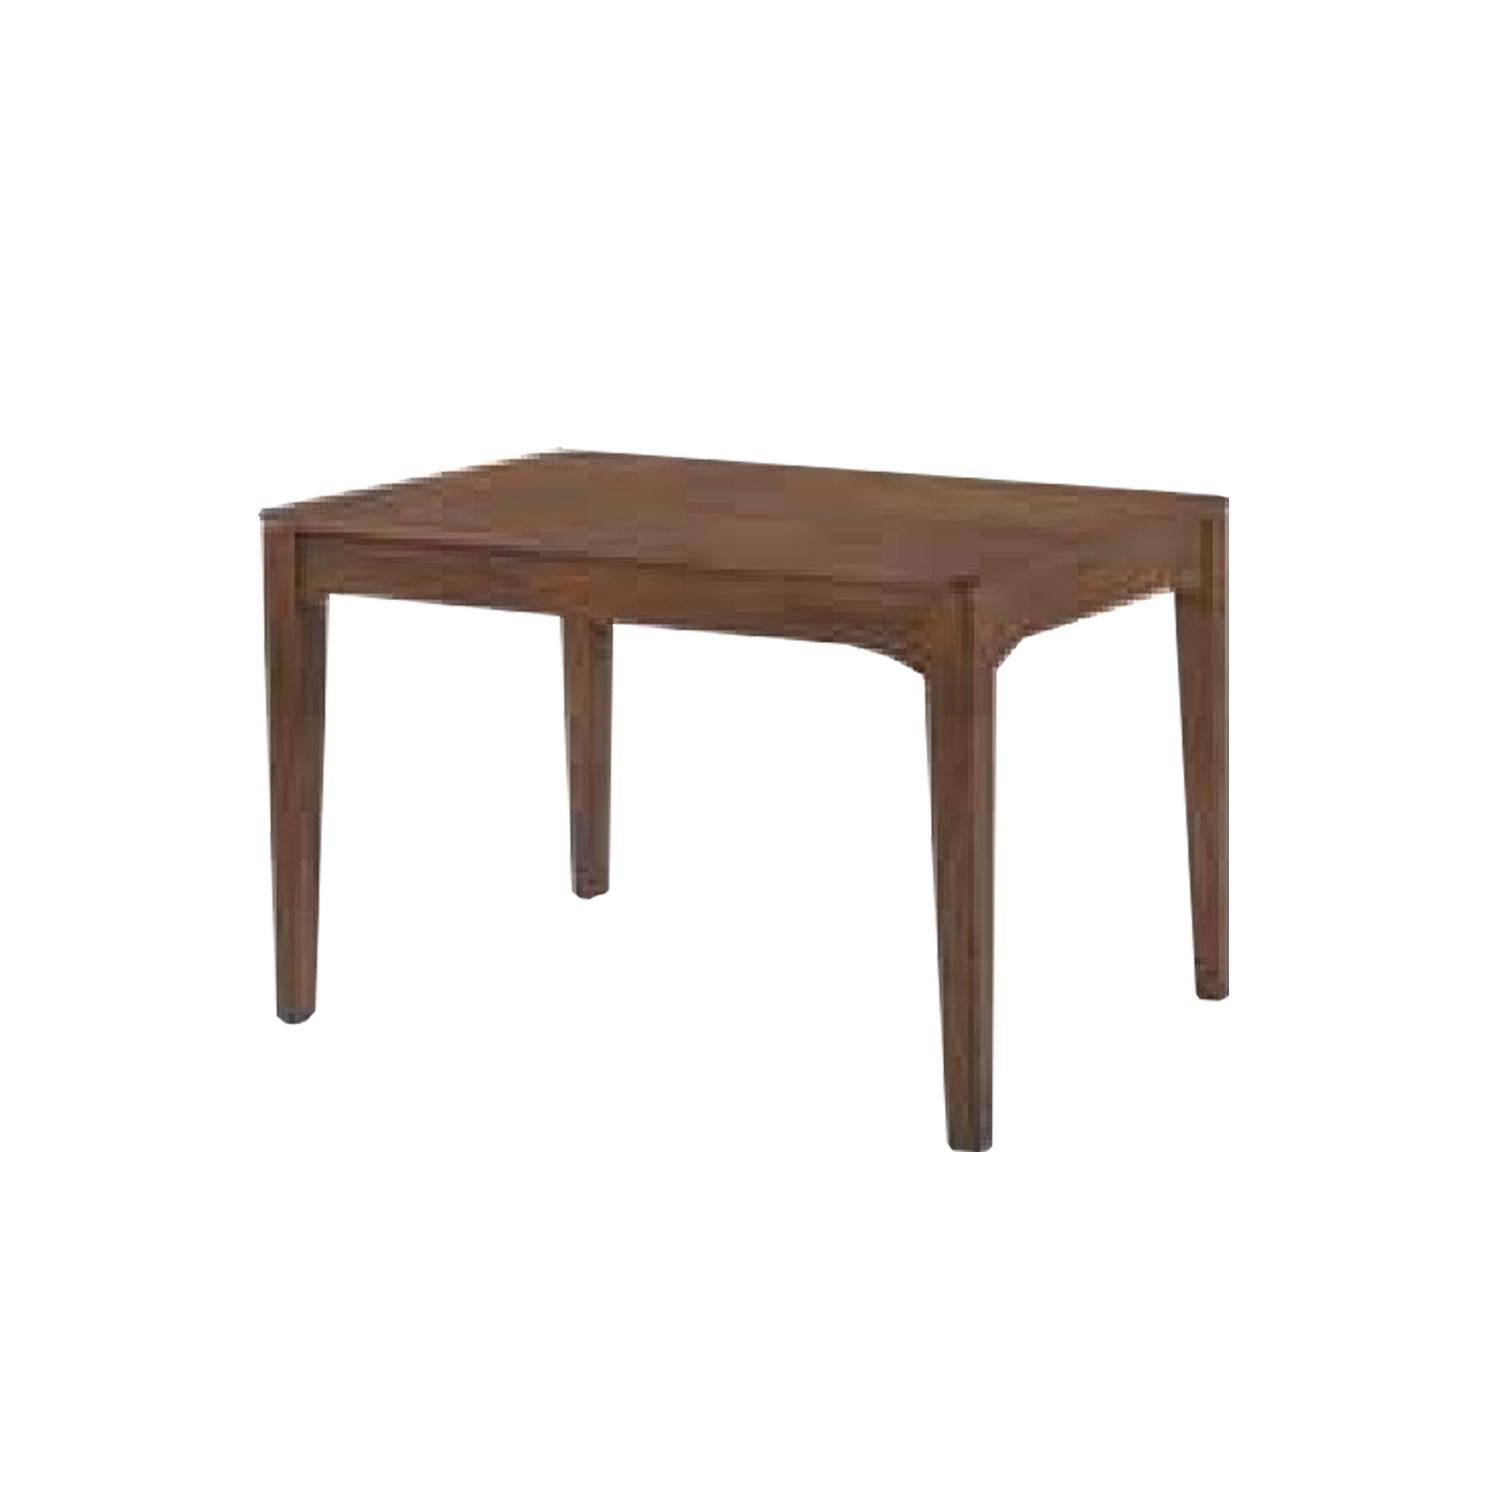 Bethel Dining Table By Living Mall.